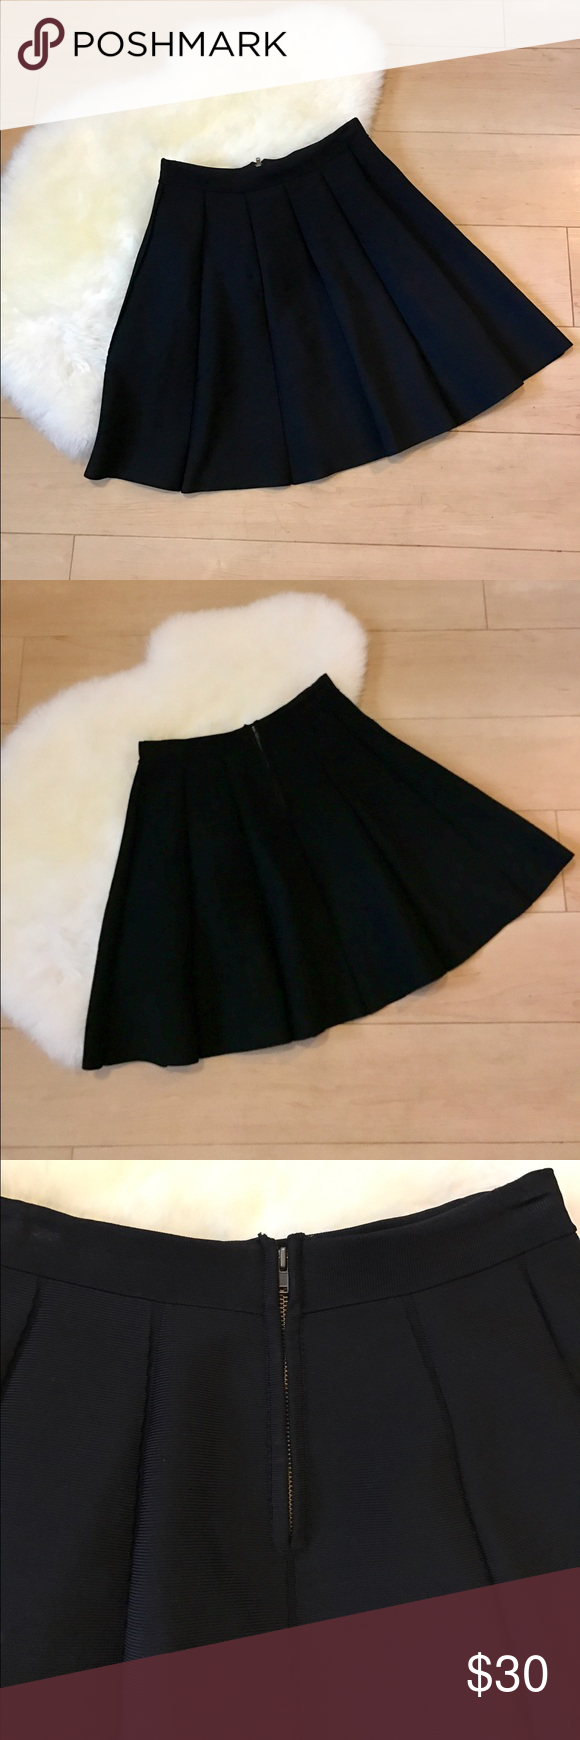 Parker Pleated Black Skirt ▪️Parker Pleated Black Skirt                                                 ▪️Women's Size Large                                                          ▪️Excellent Used Condition                                                  ▪️Zipper on back, classic Pleated style.                            ▪️63% Rayon, 37% Nylon Parker Skirts Midi